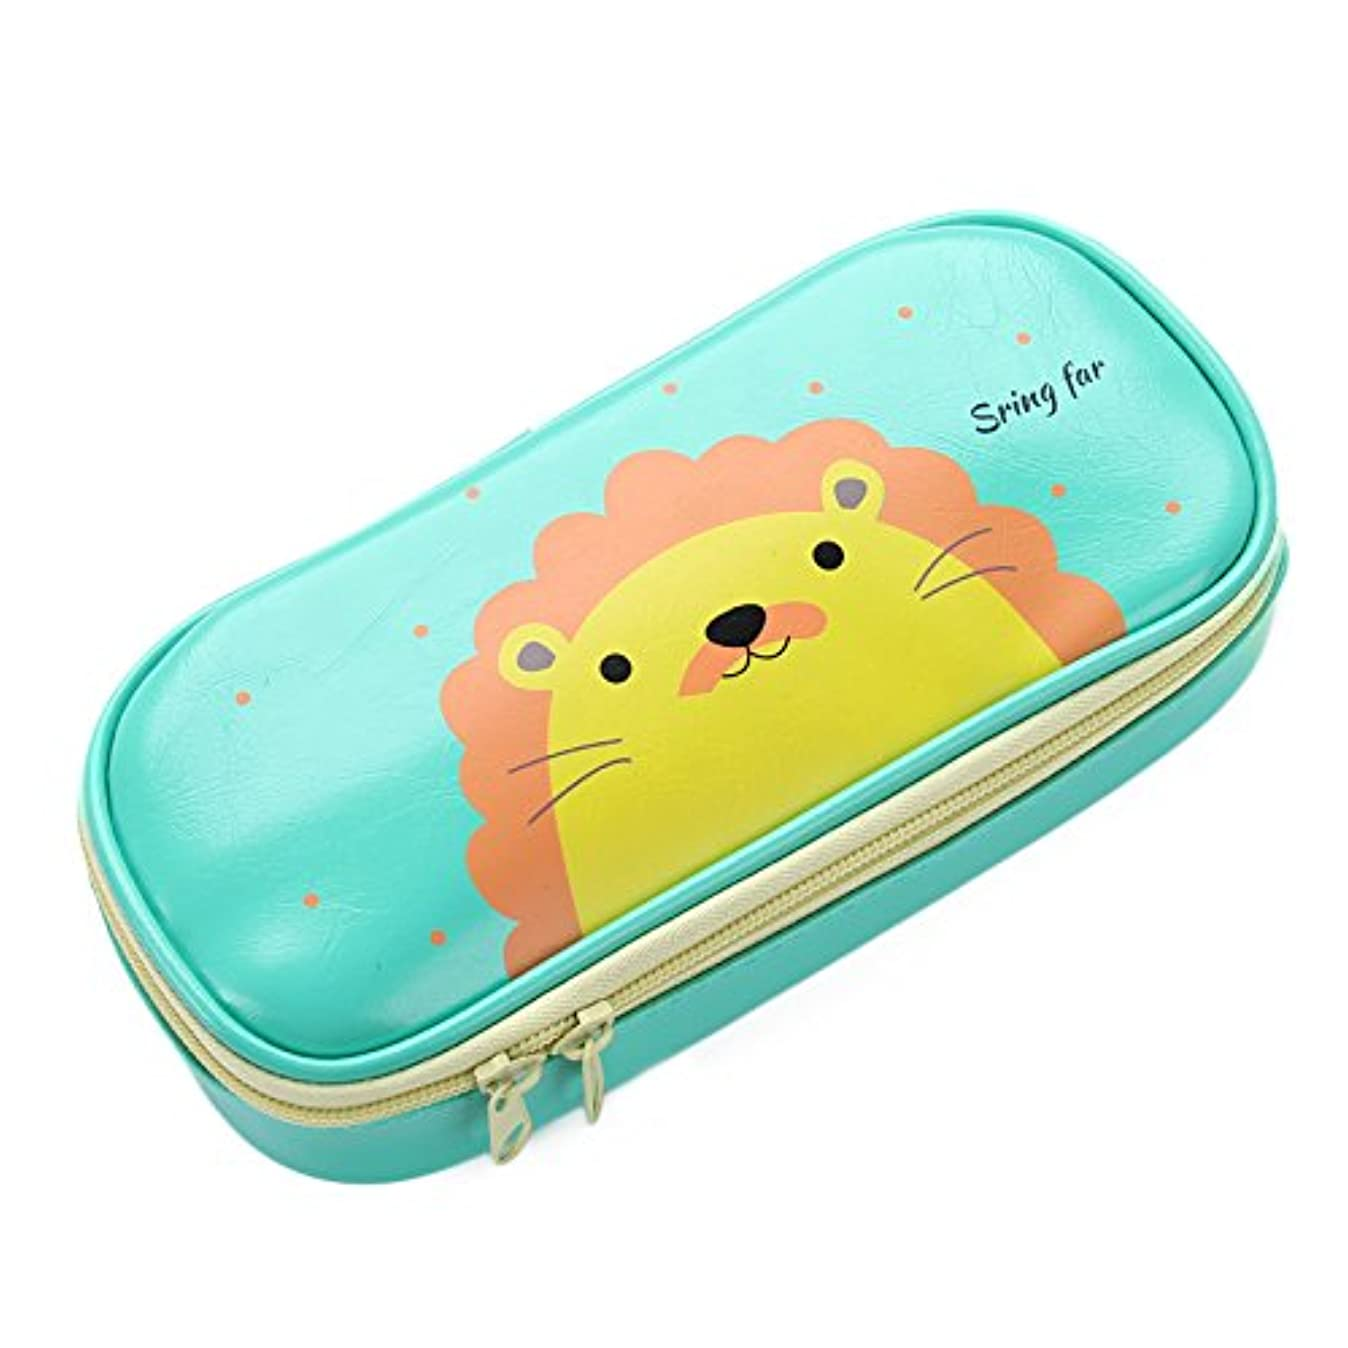 Cute Pencil Case - High Capacity Pencil Pouch Stationery Organizer Multifunction Cosmetic Makeup Bag, Green Lion Perfect Holder for Pencils and Pens,Green ?- r0804346607